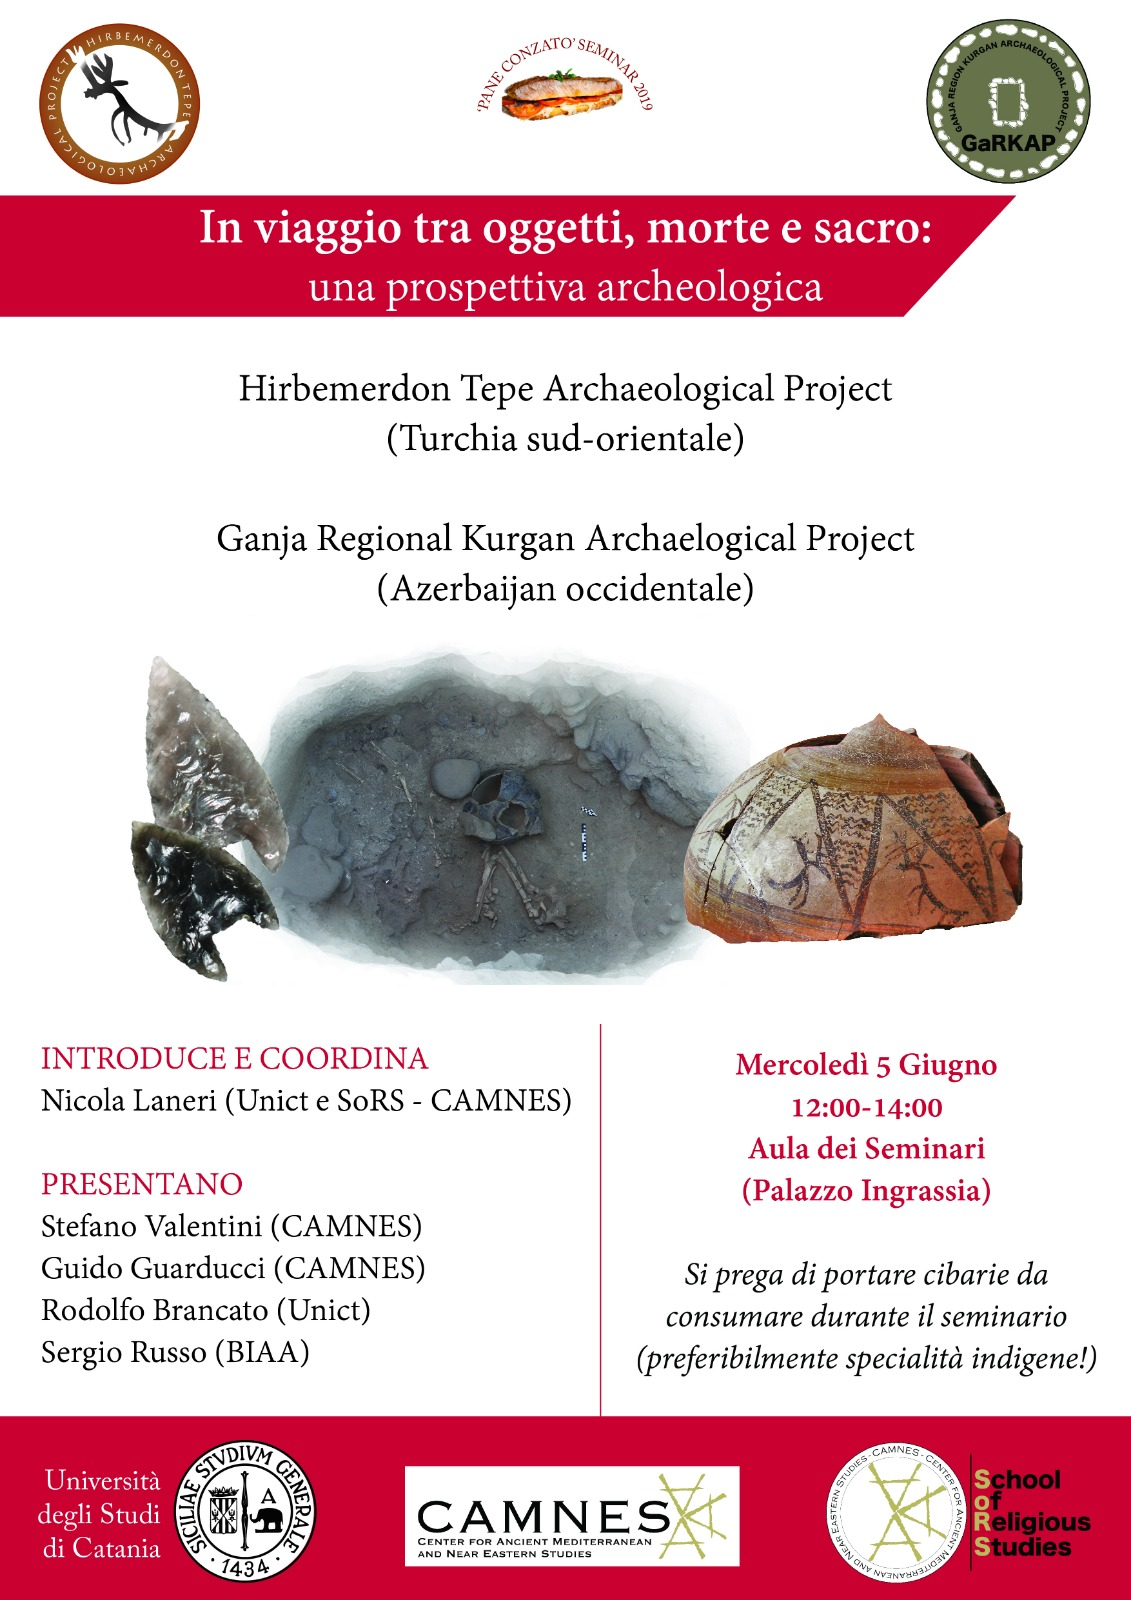 SEMINAR: Traveling between Objects, Death and the Sacred: An Archaeological Perspective (in Italian)